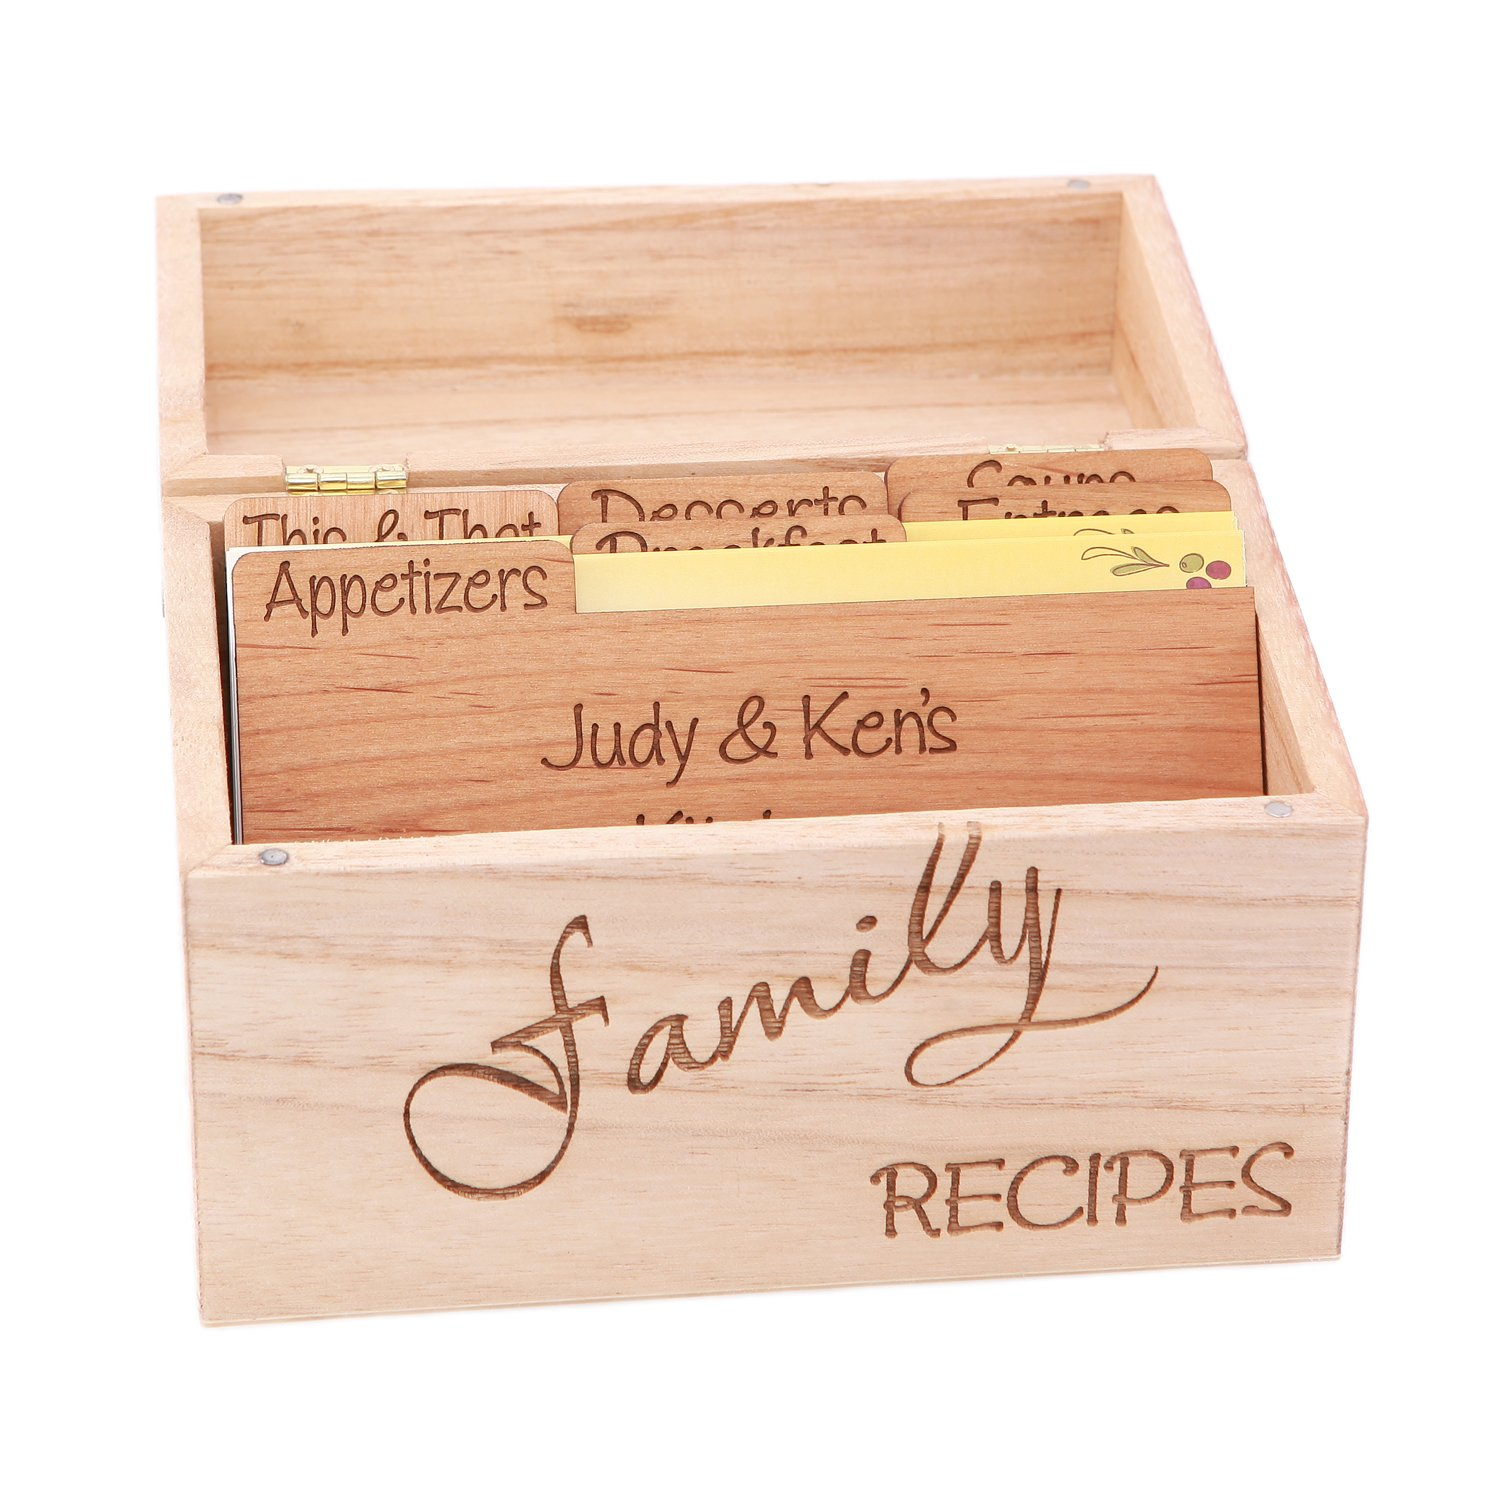 LGU(TM) Monogrammed Personalized Custom Family Recipe Box Wood Box with Recipe Card Dividers